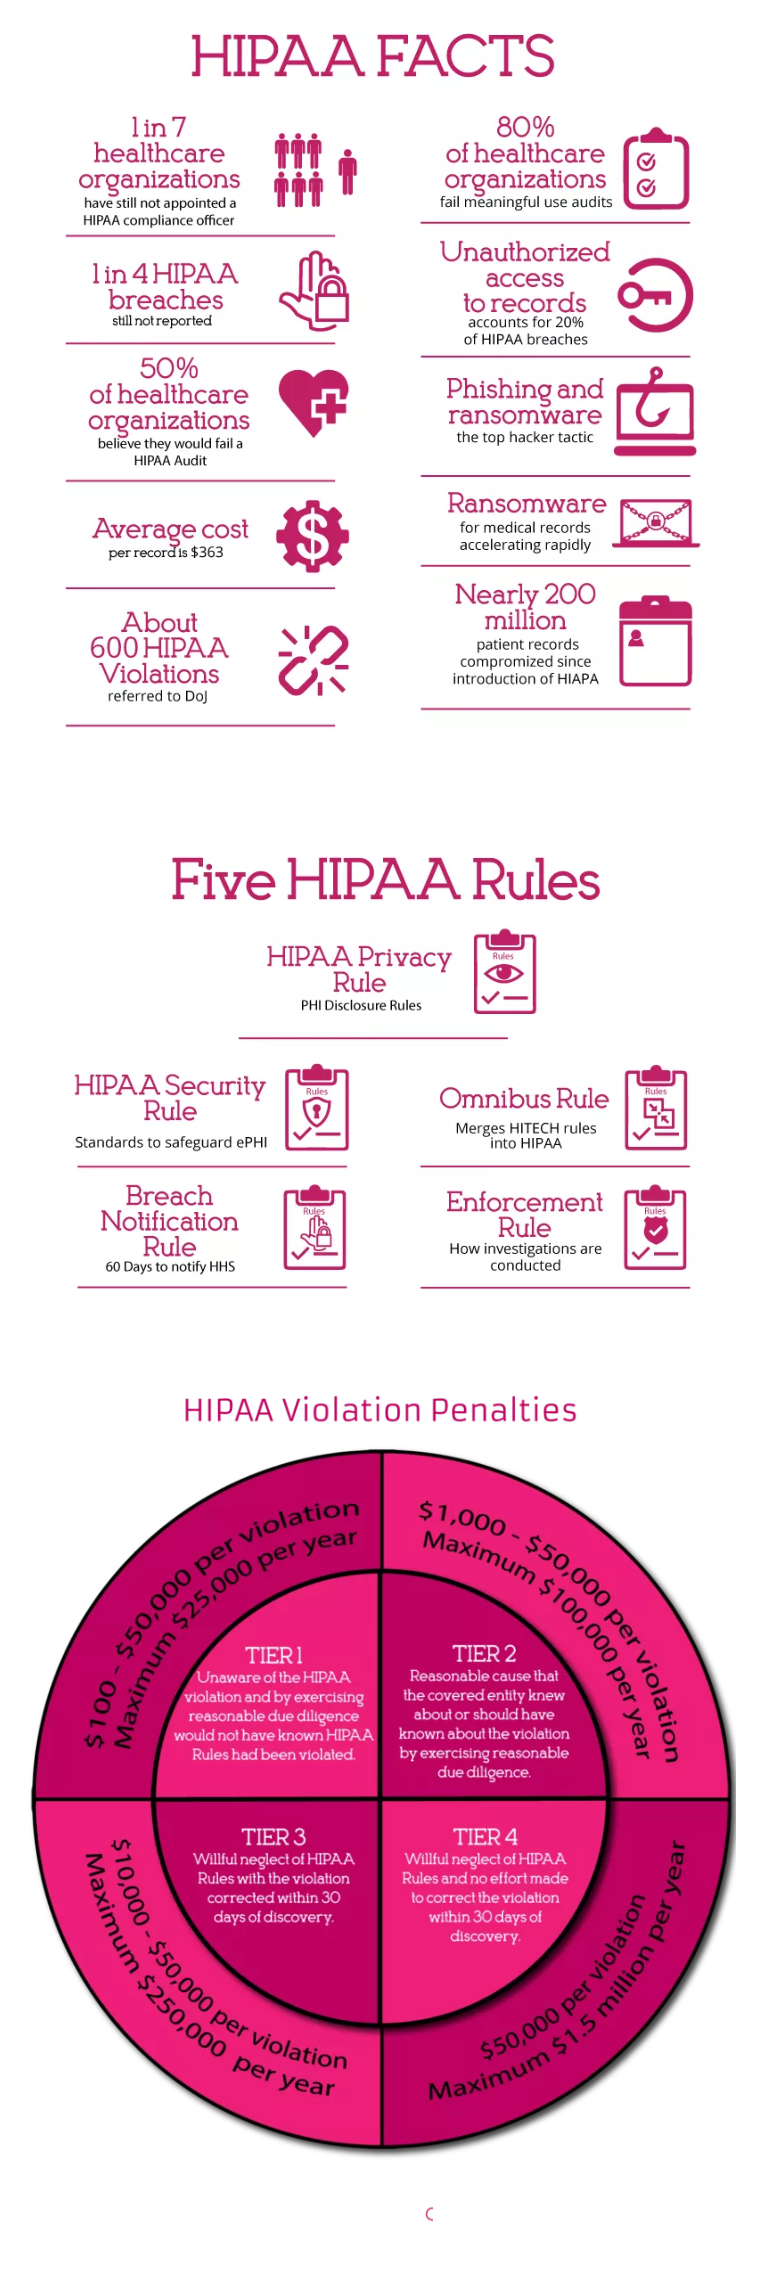 hipaa rules facts violations - HIPAA compliance checklist 2019